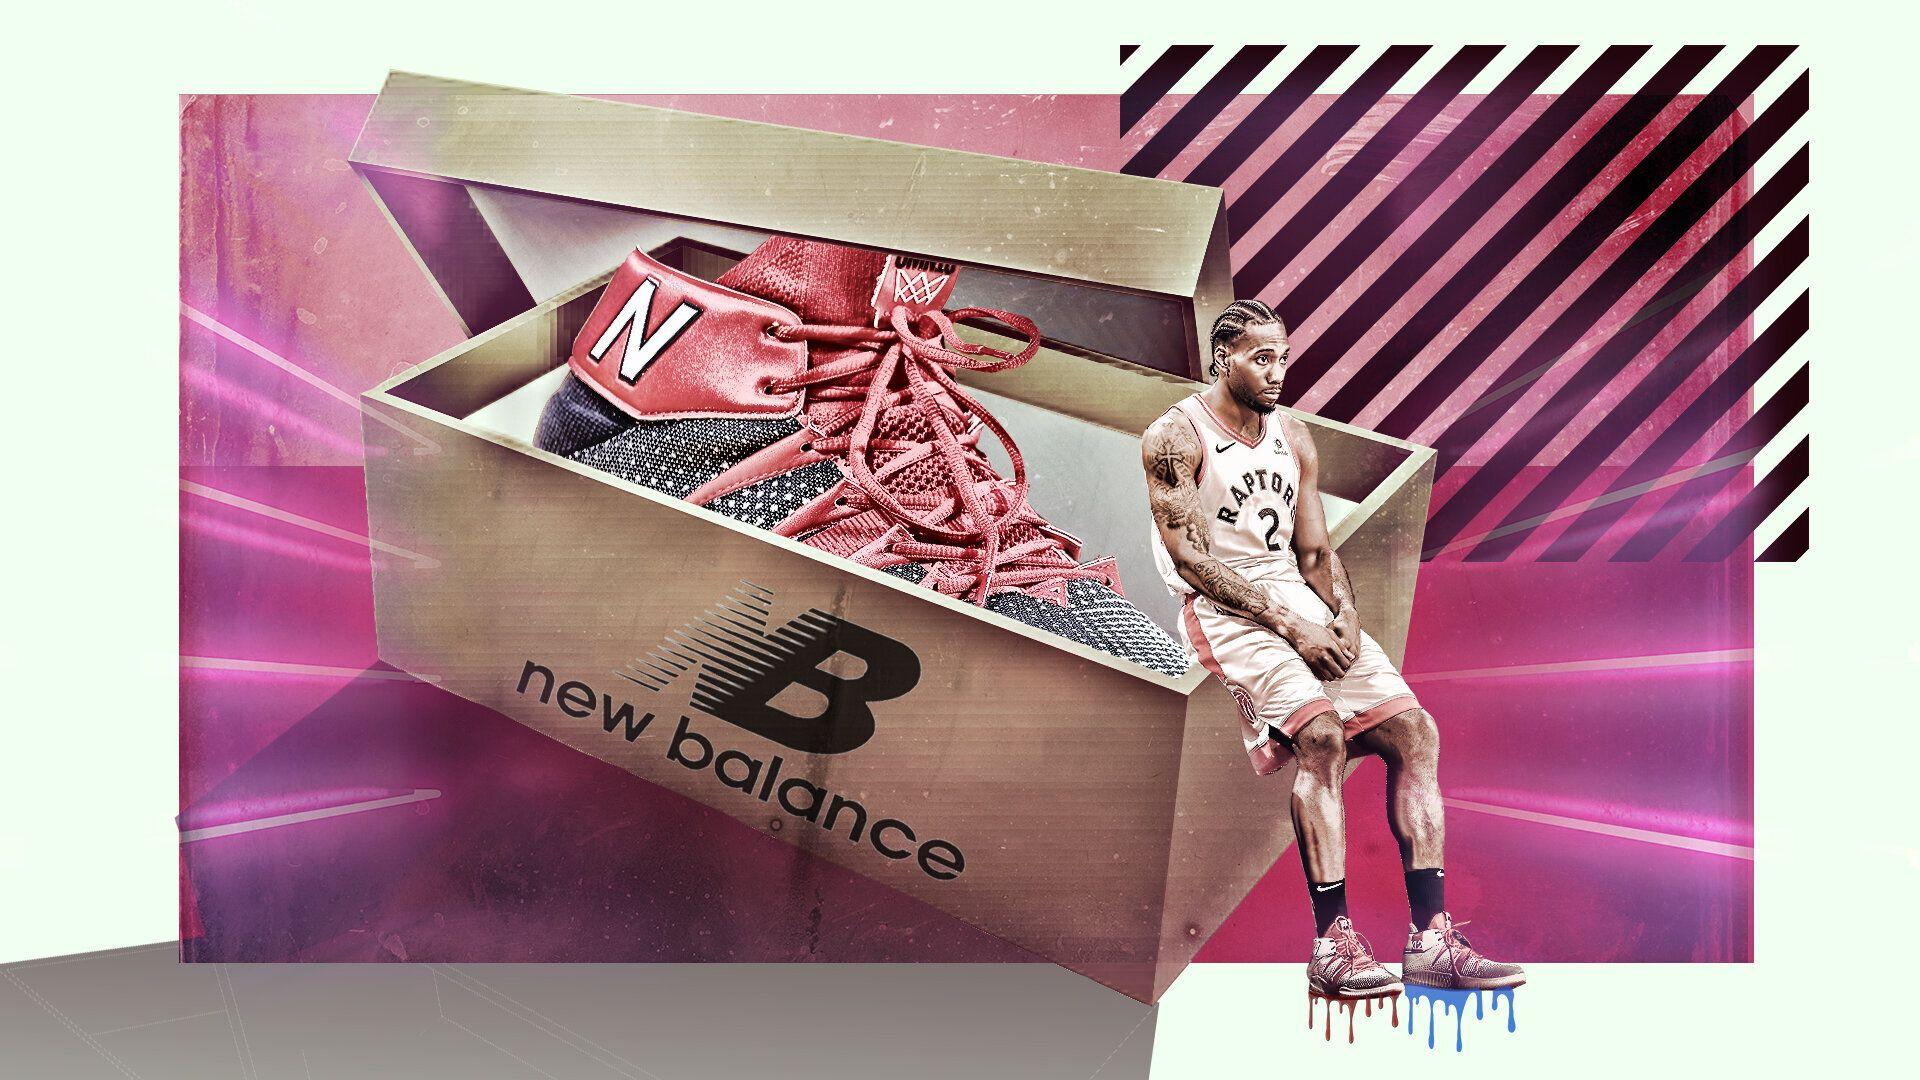 new balance basketball sales rep